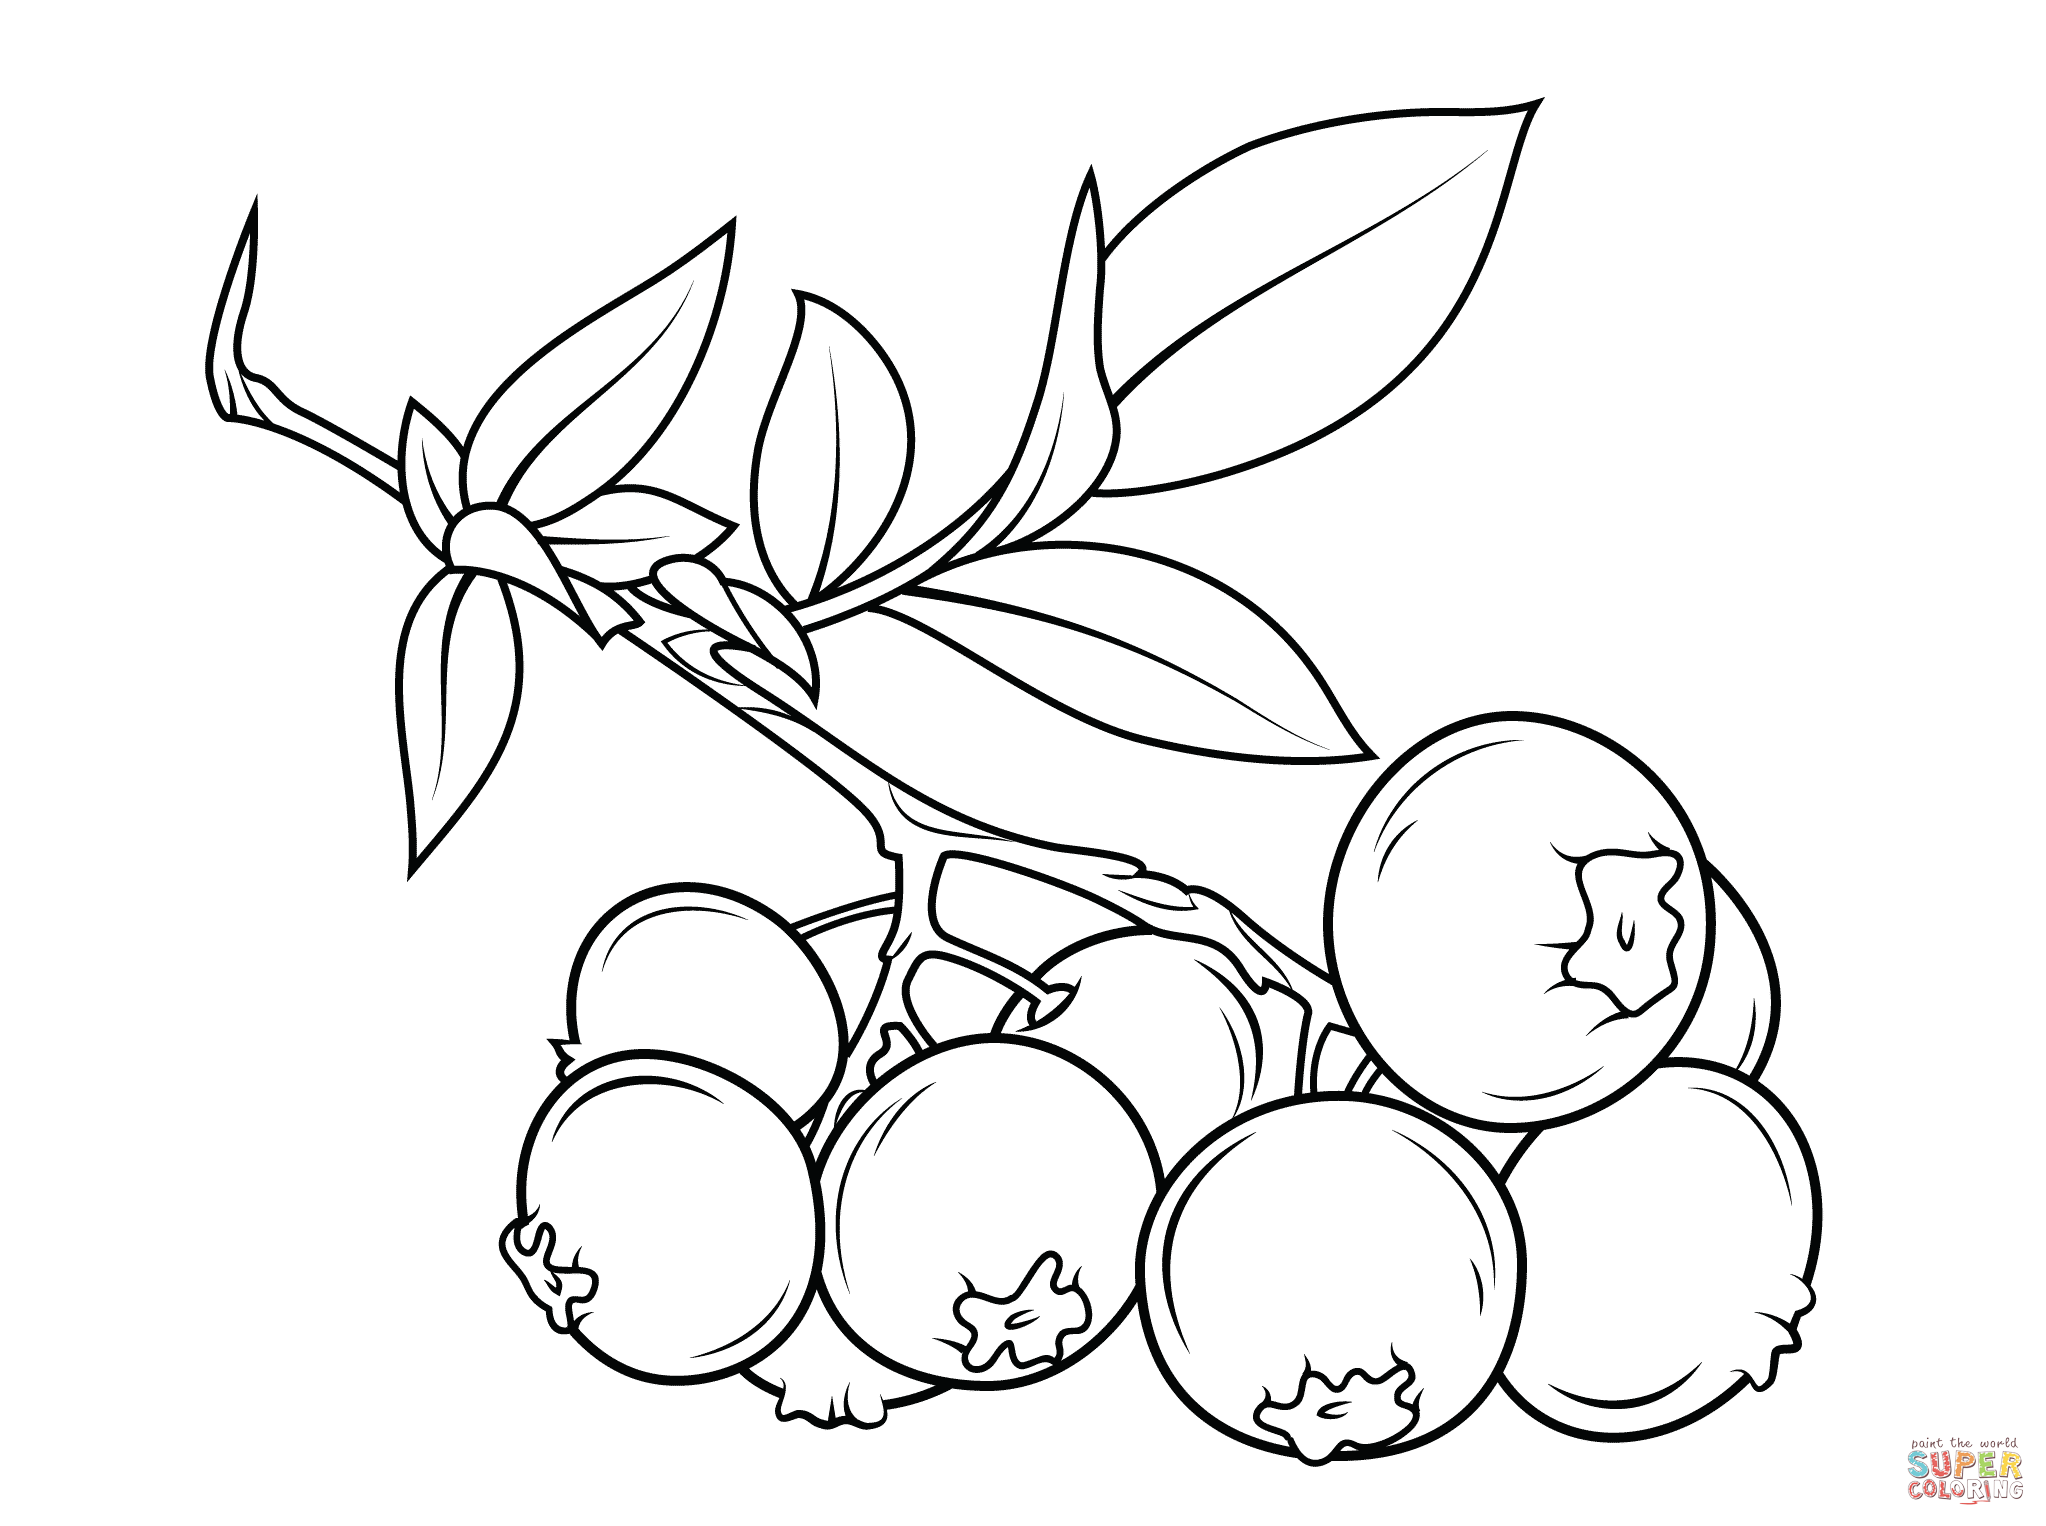 blueberry branch coloring page free printab